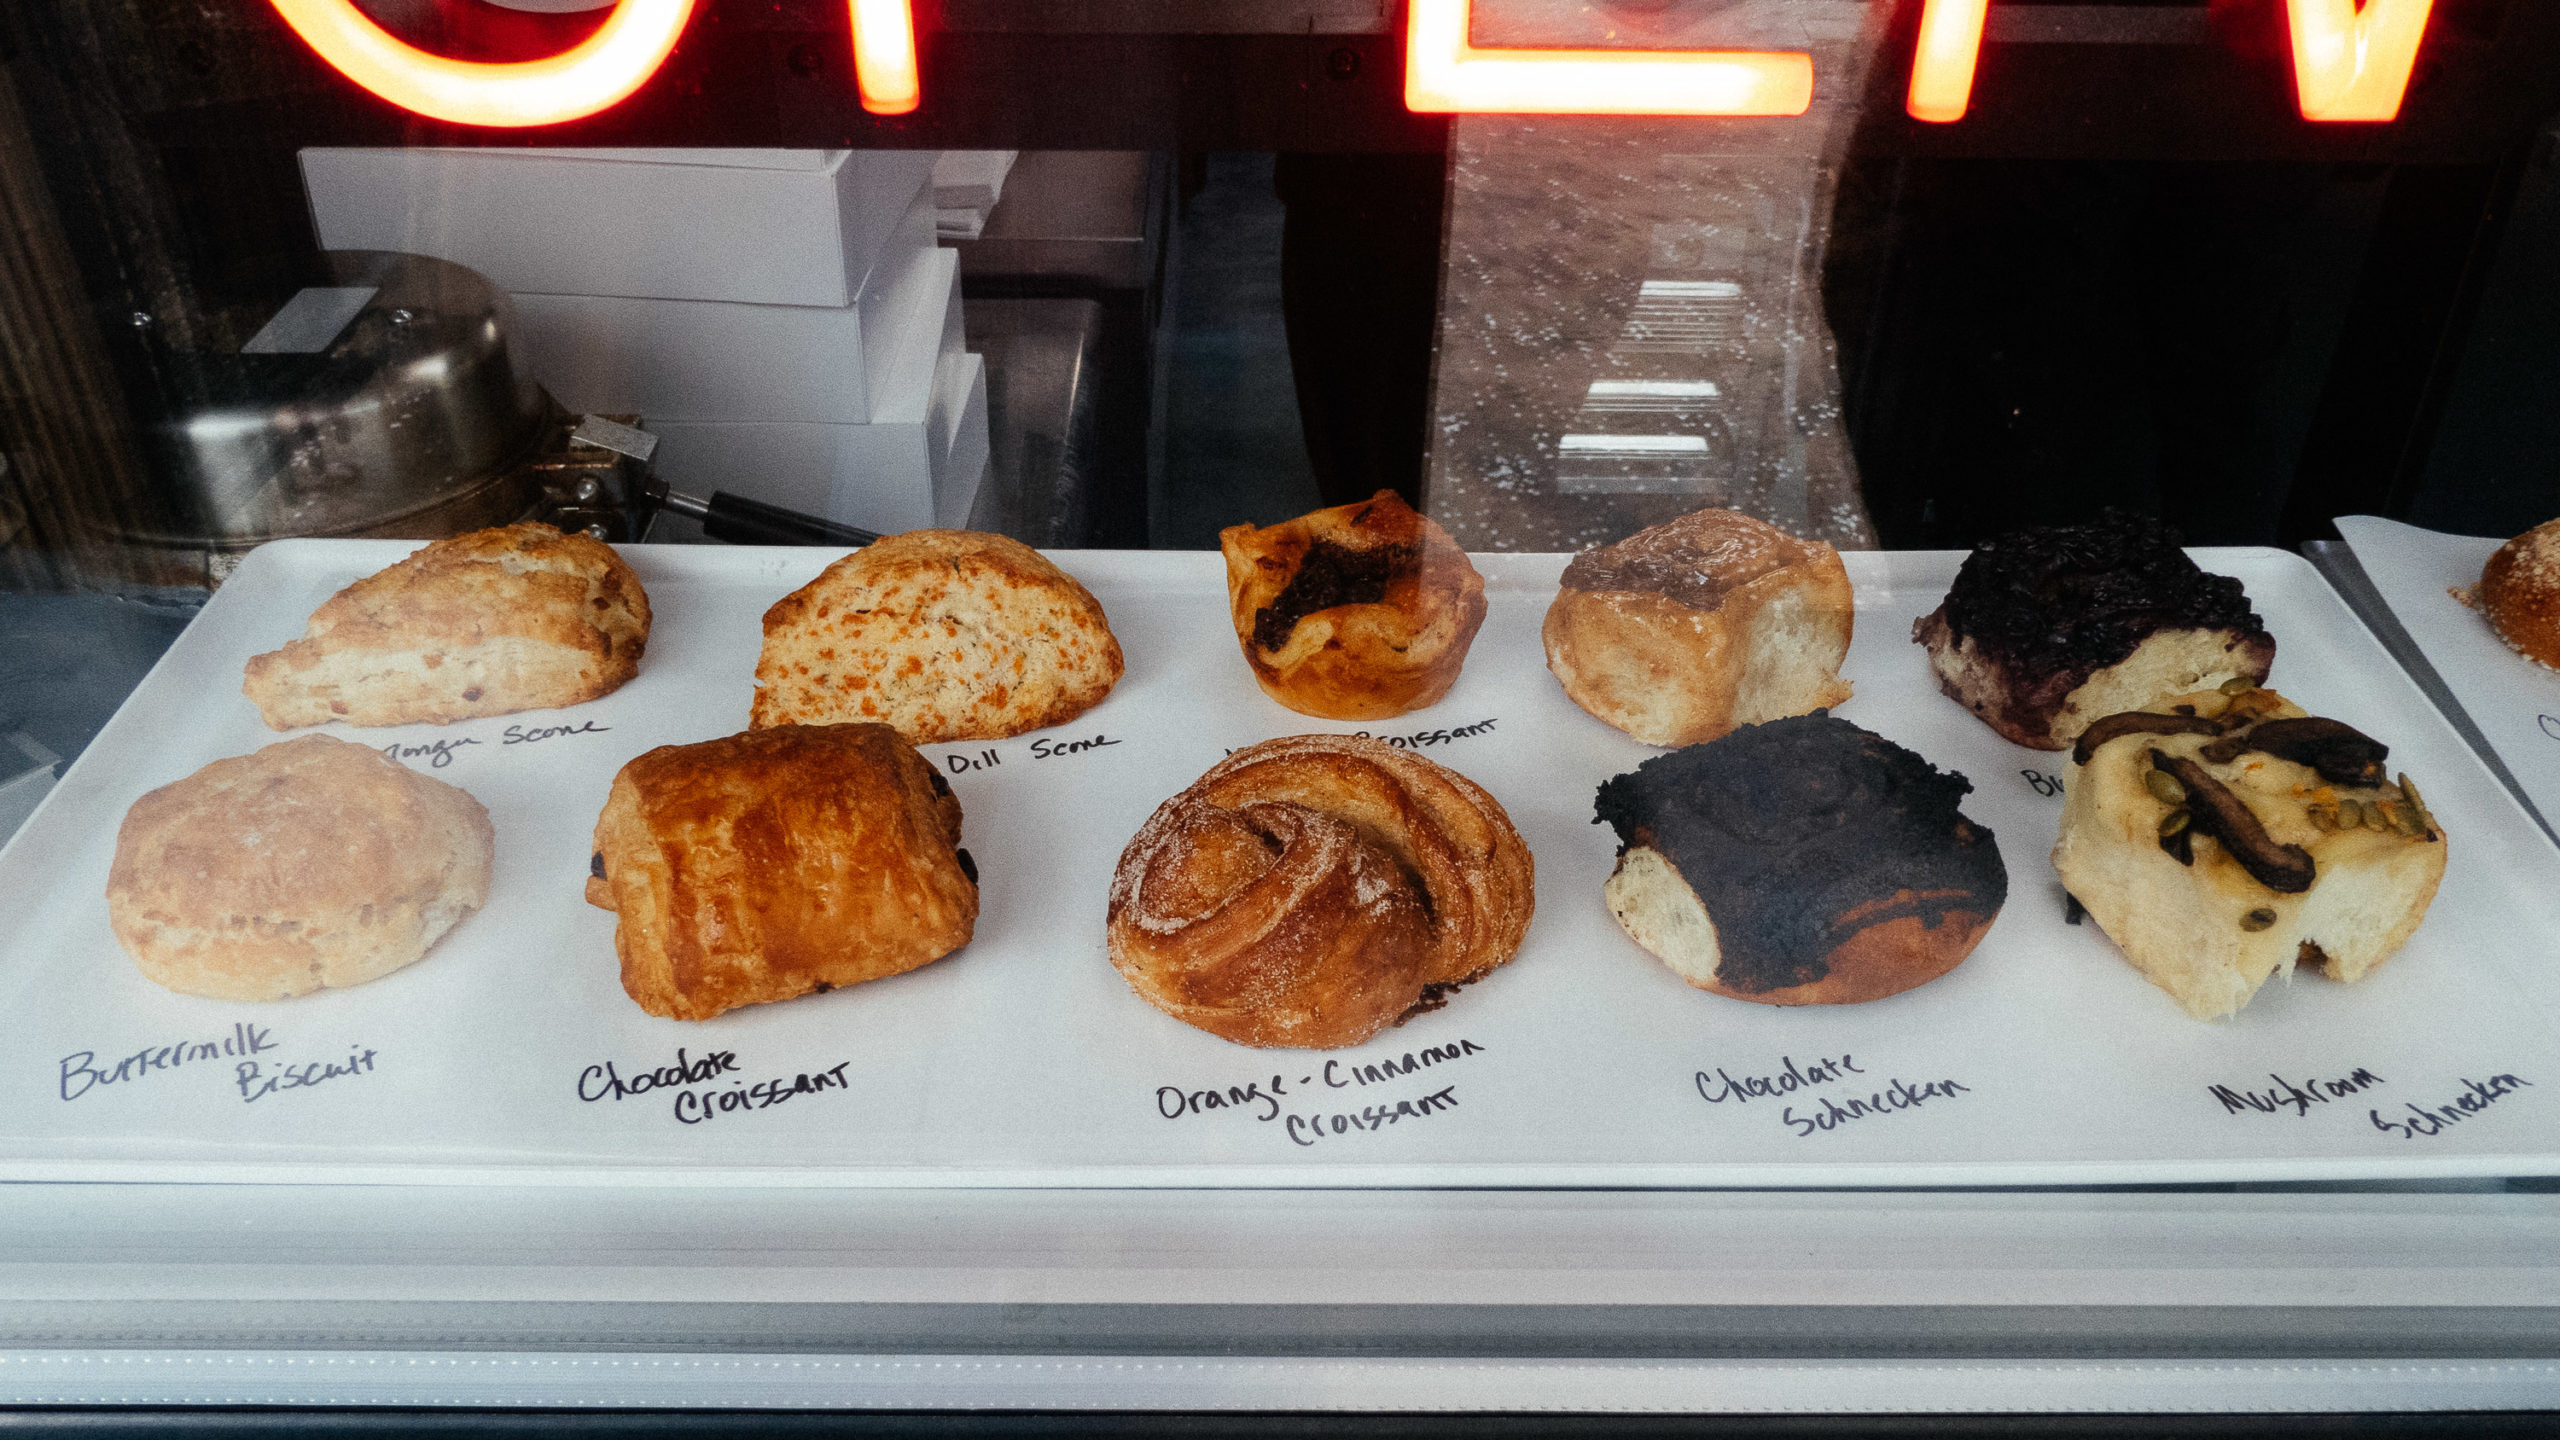 Baked goods on display behind a pane of glass